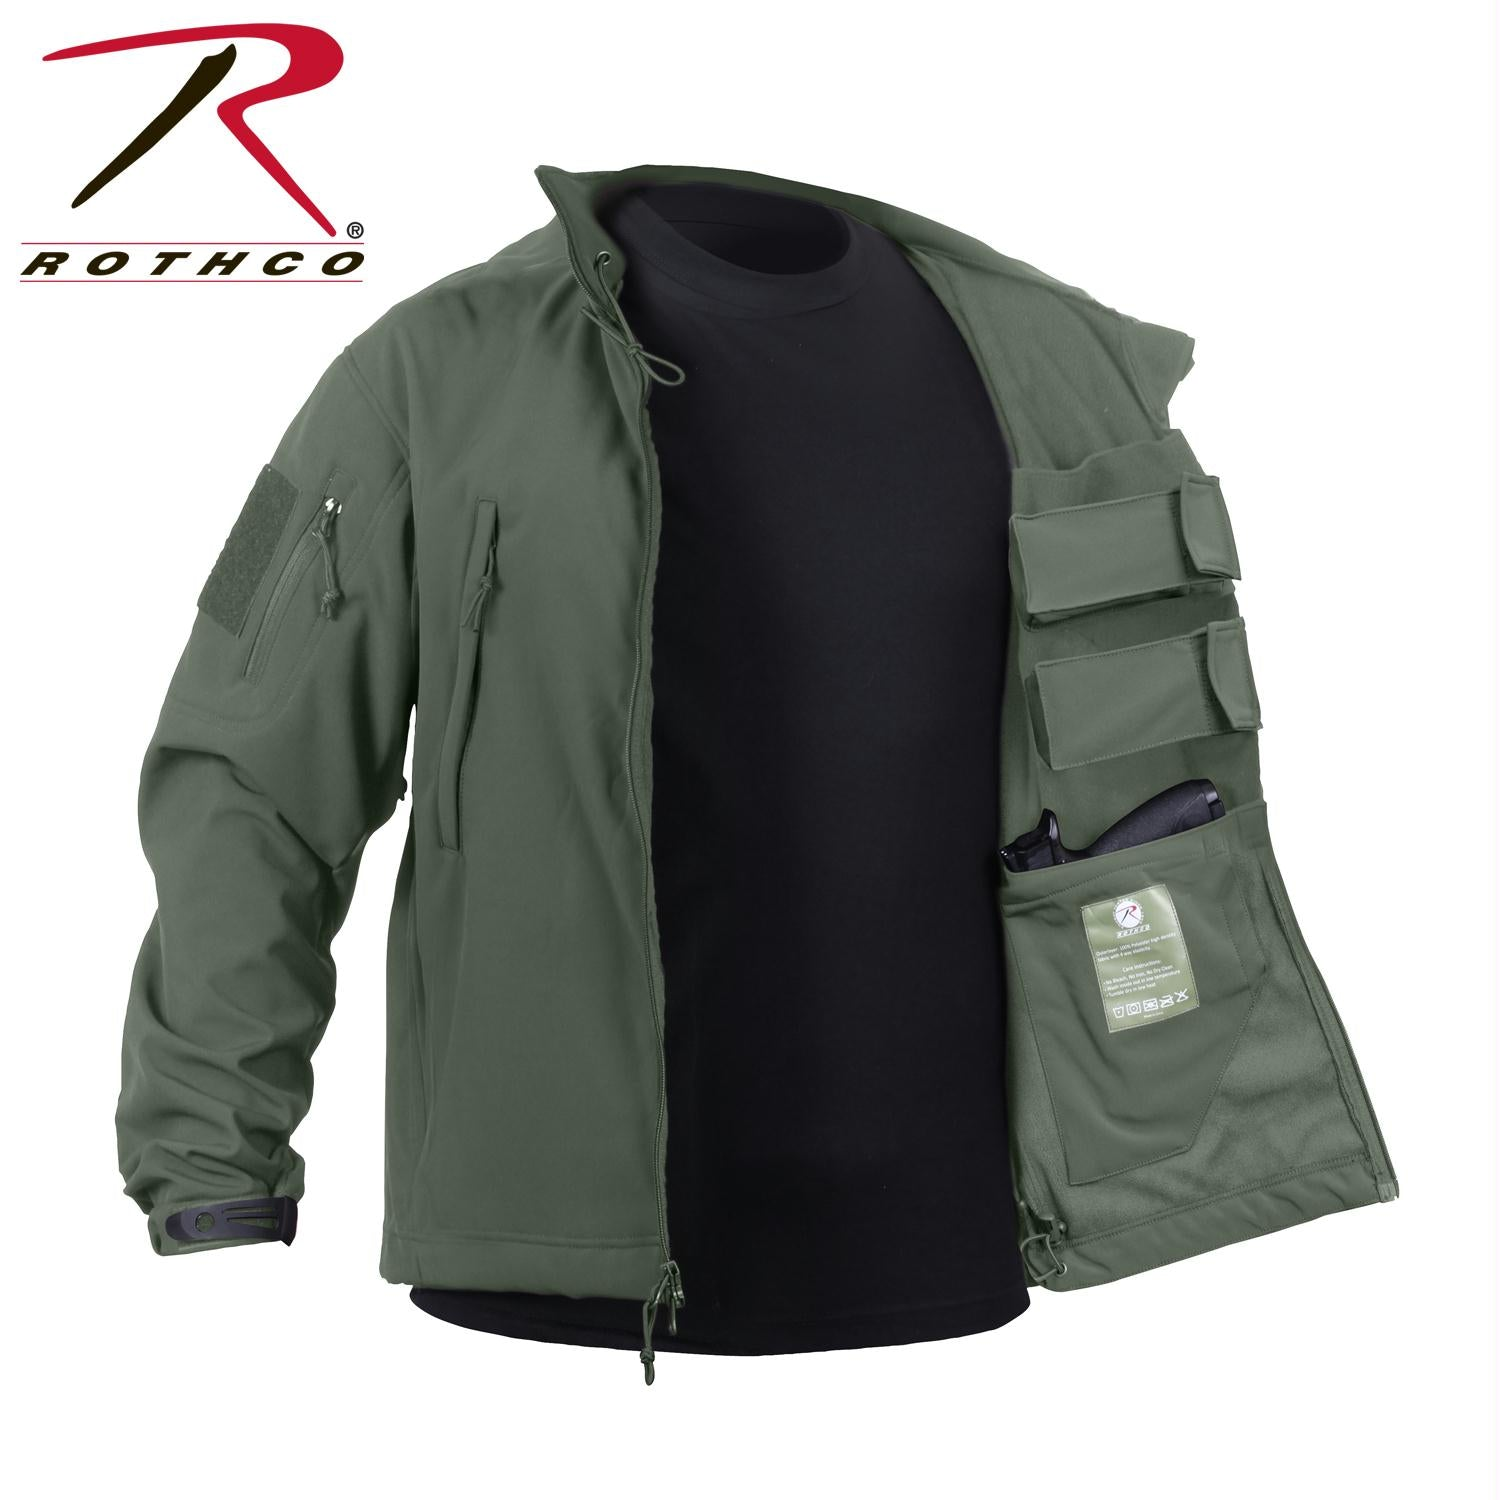 Rothco Concealed Carry Soft Shell Jacket - Olive Drab / 2XL